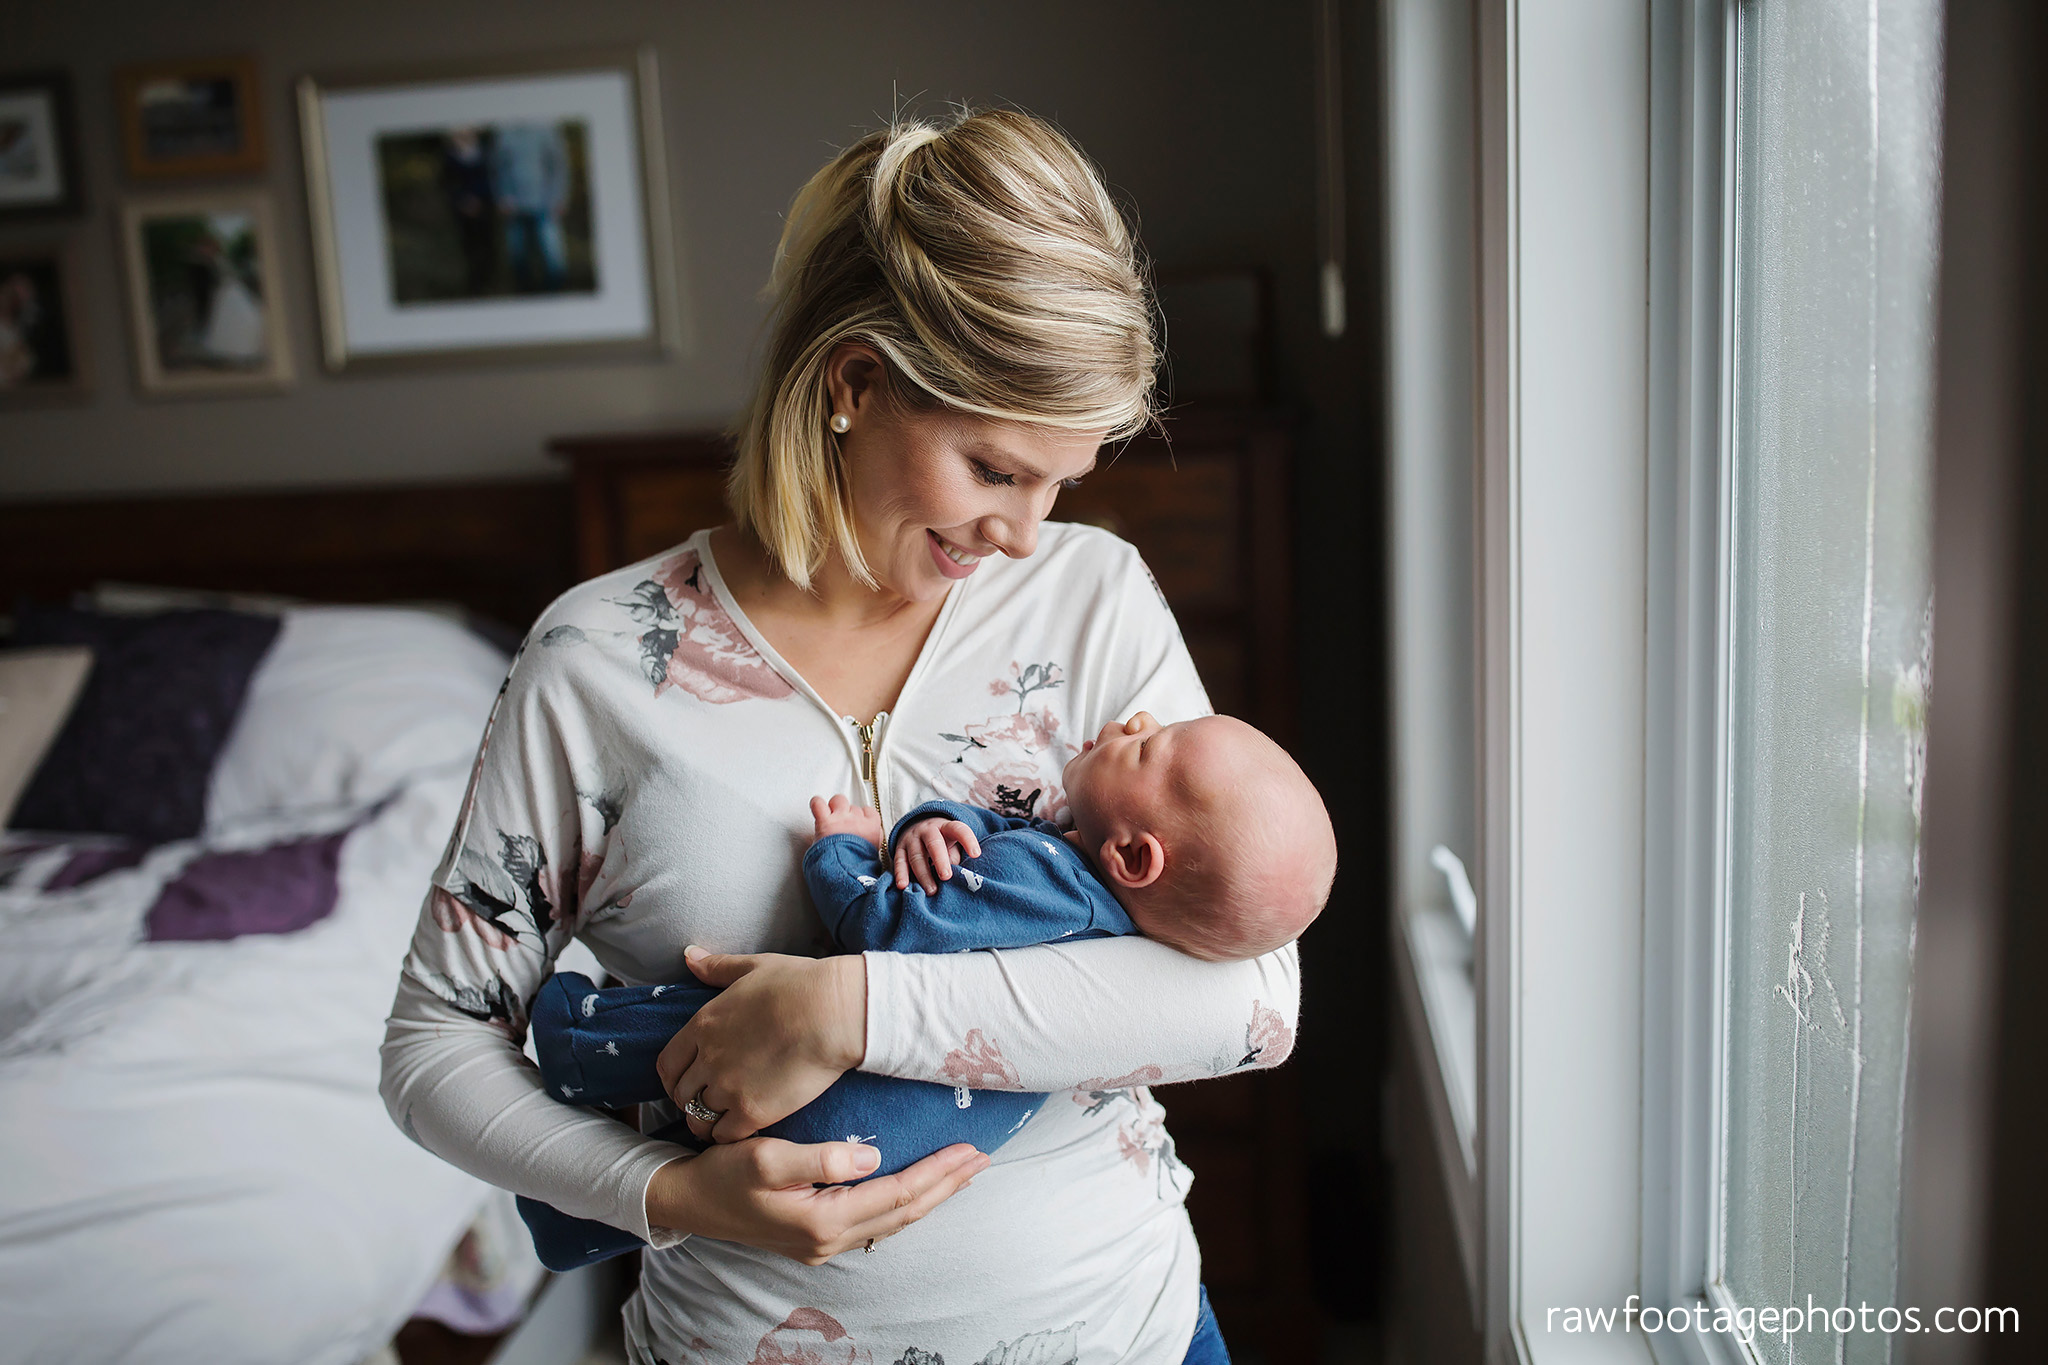 london_ontario_newborn_photographer-newborn_lifestyle_session-in_home_newborn_photos-raw_footage_photography015.jpg